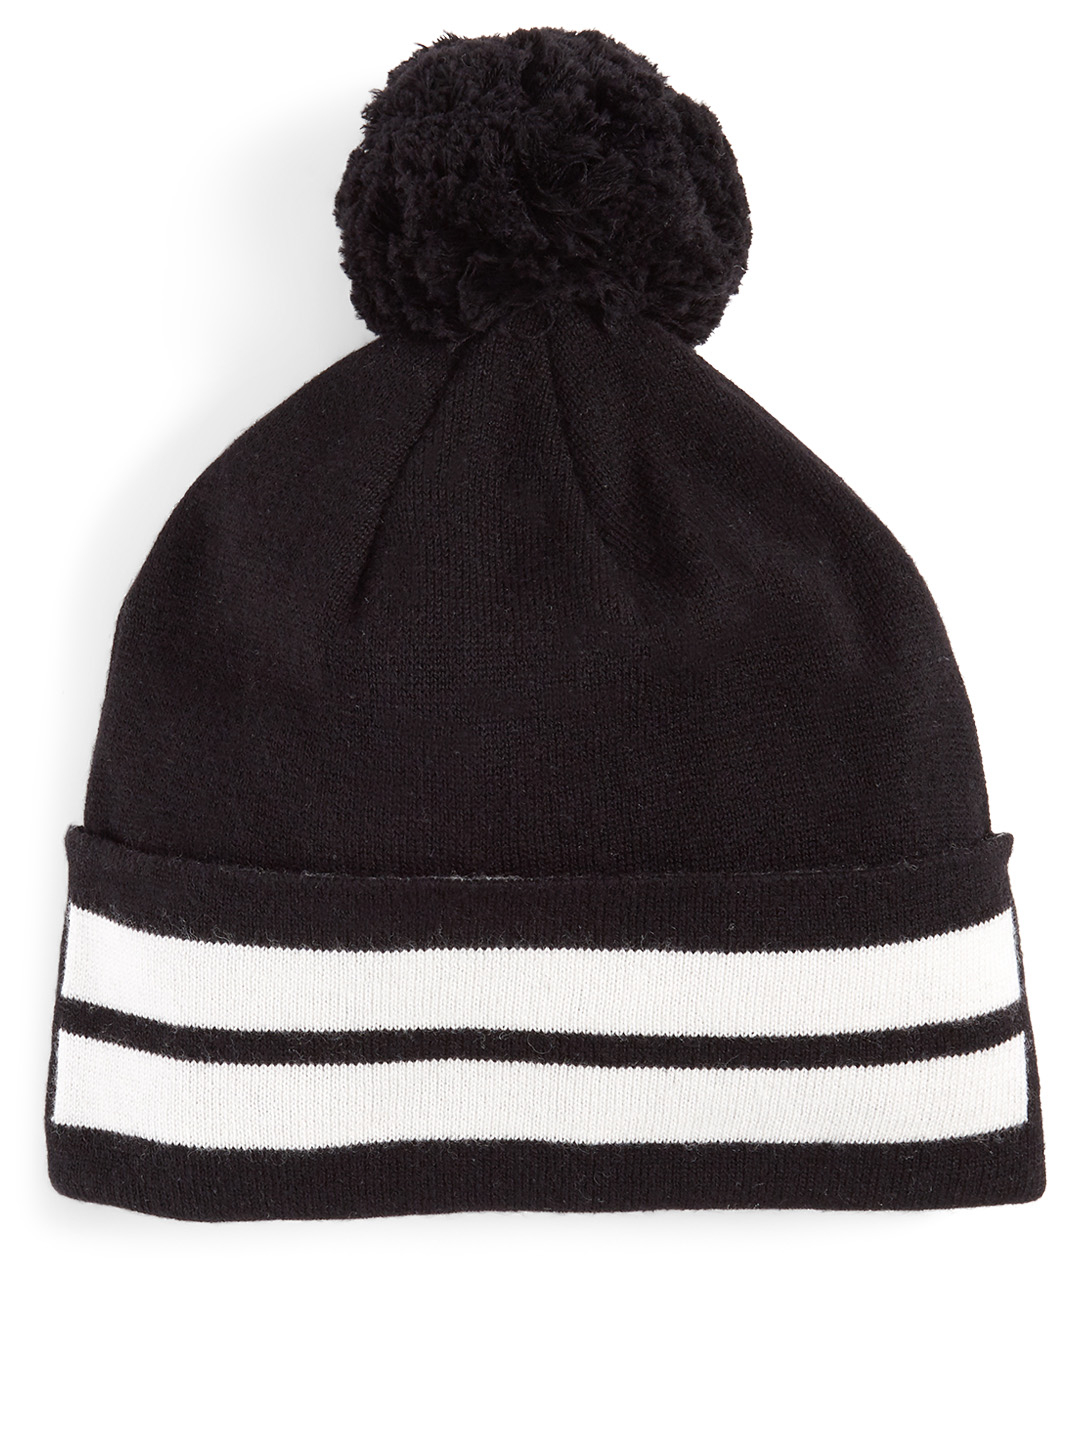 MACKAGE Kiko Logo Toque With Pom Women's Black